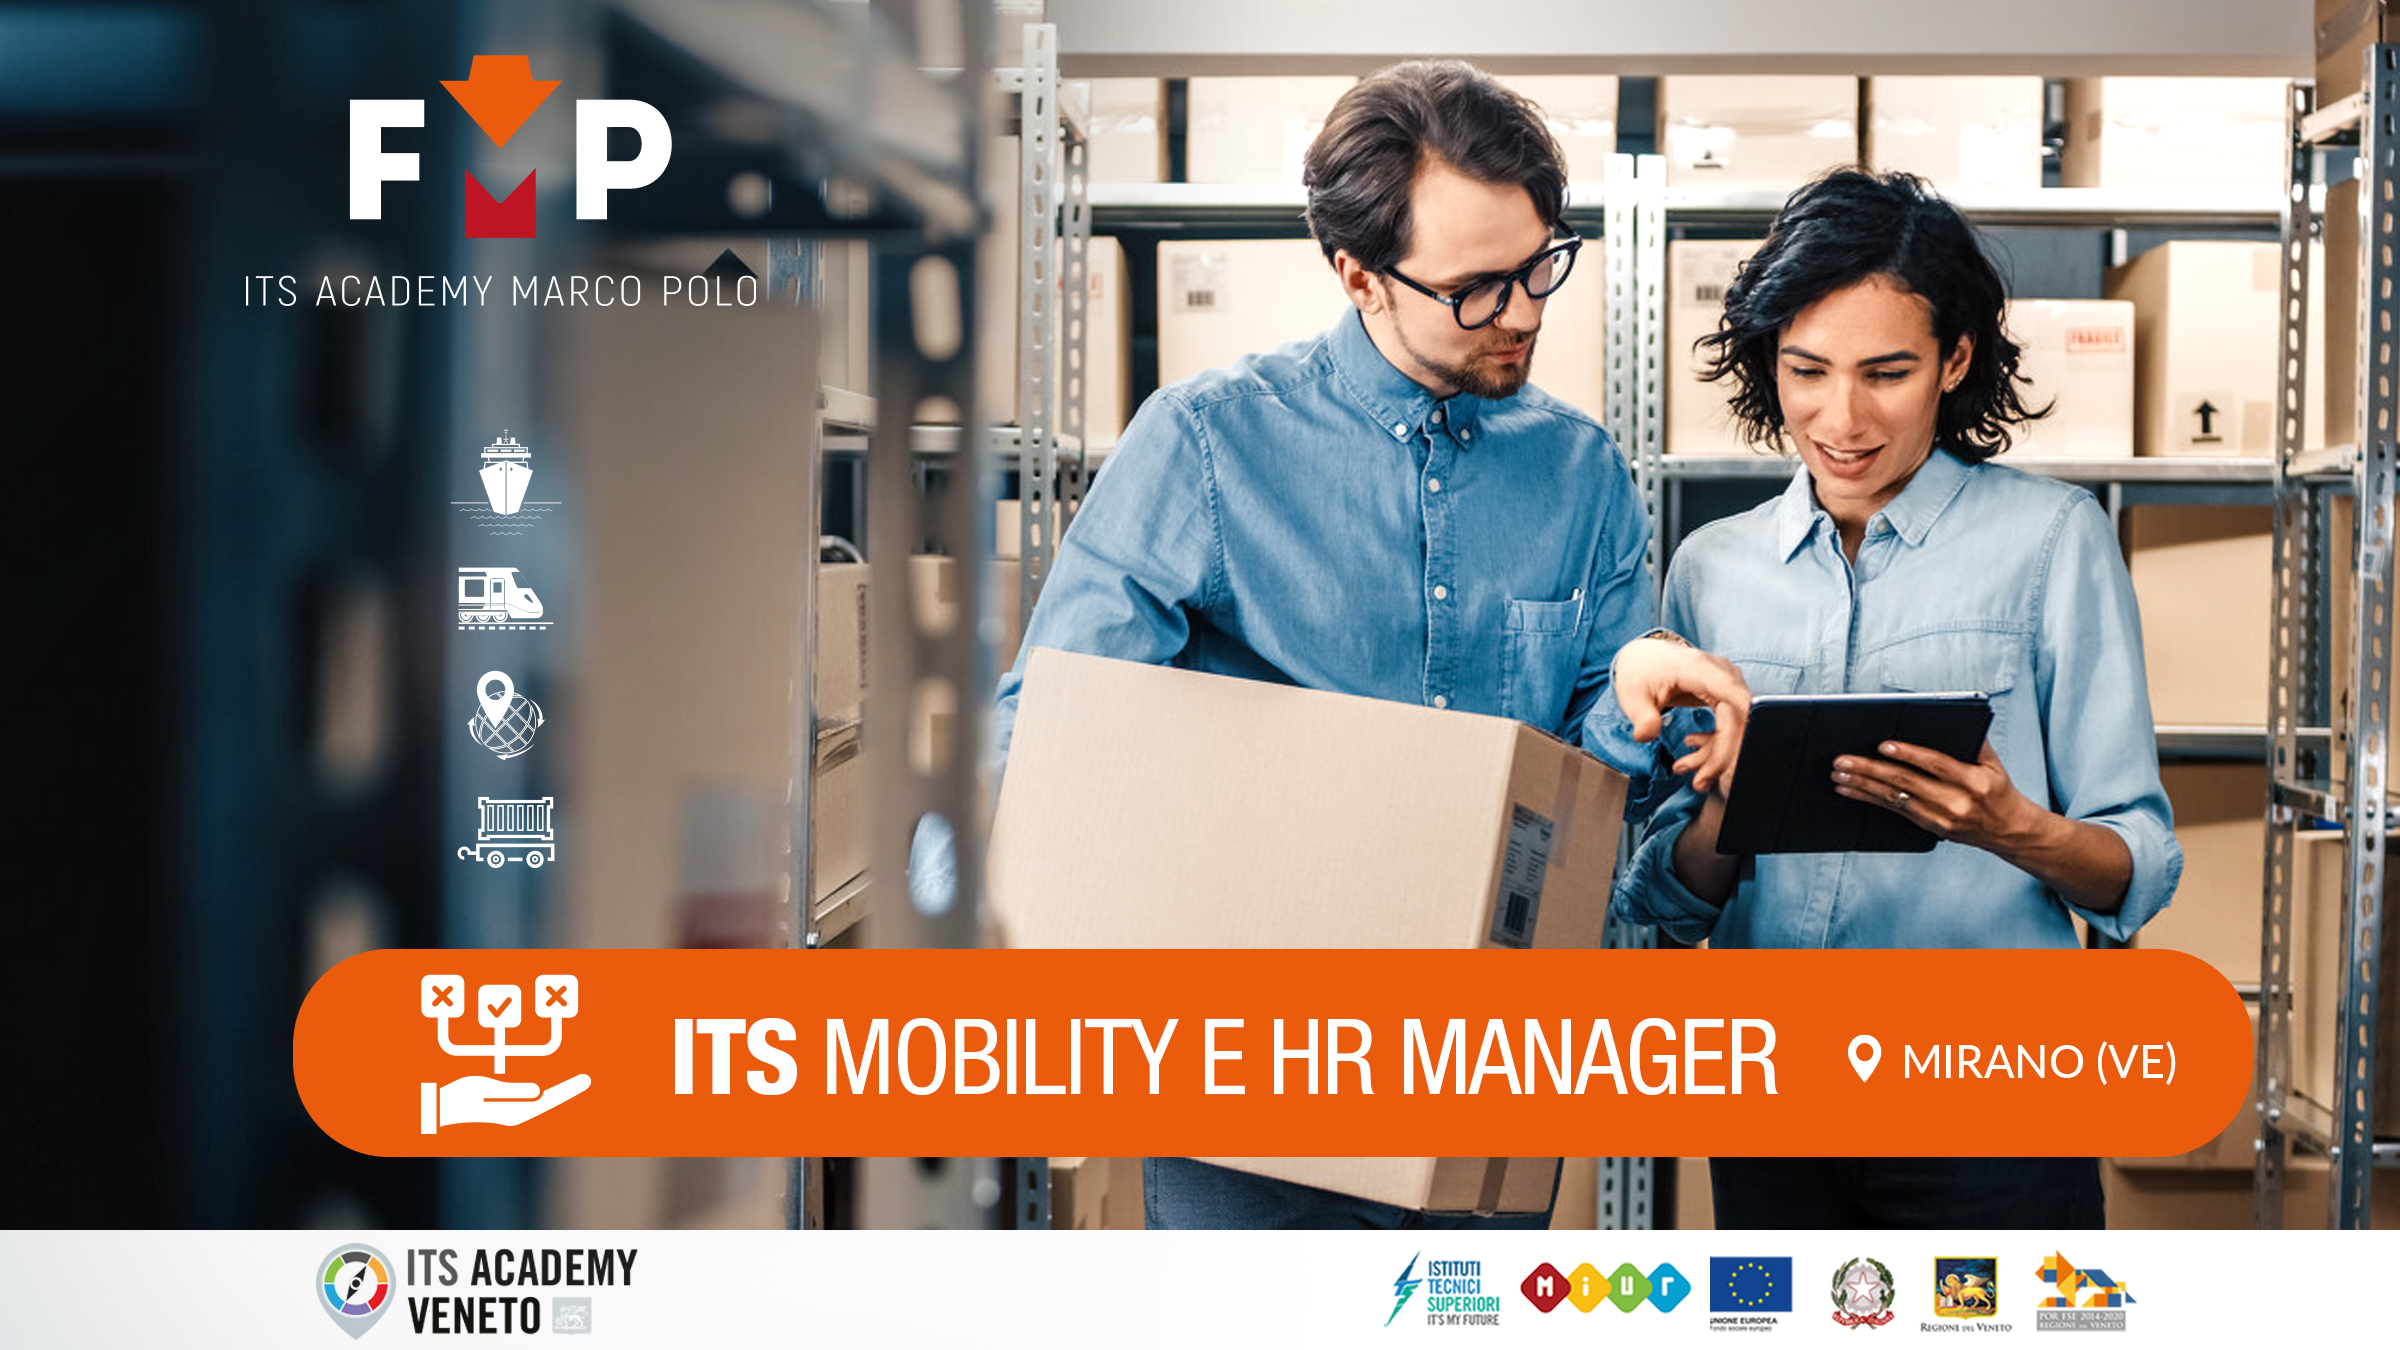 ITS Academy Marco Polo Mobility e HR Manager